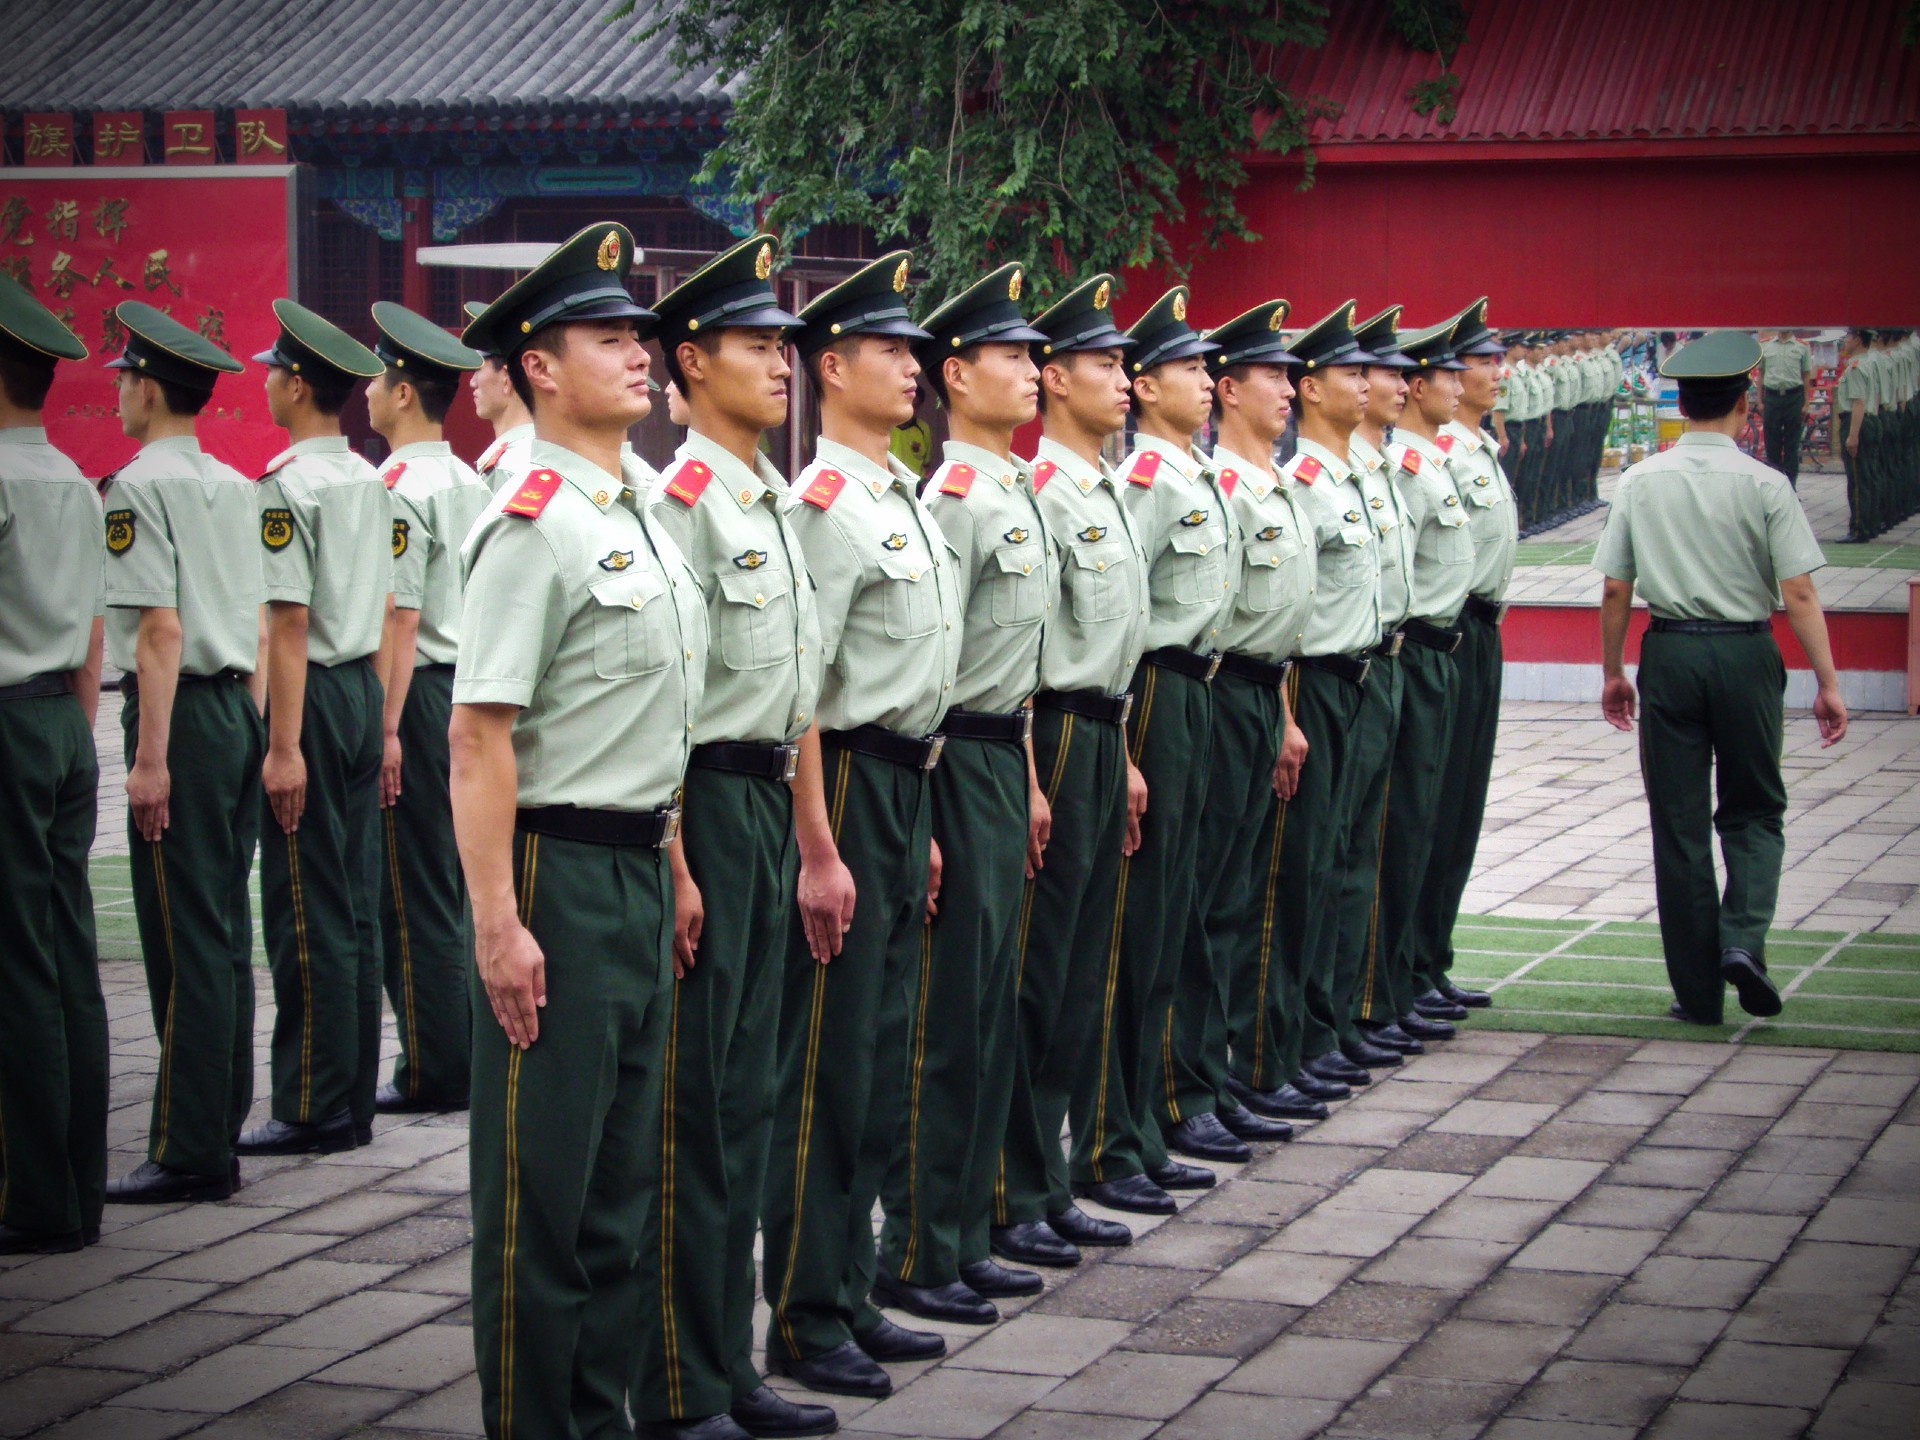 Chinese Communist Party Orders Army To Prepare For War 'At Any Second' - The National Pulse